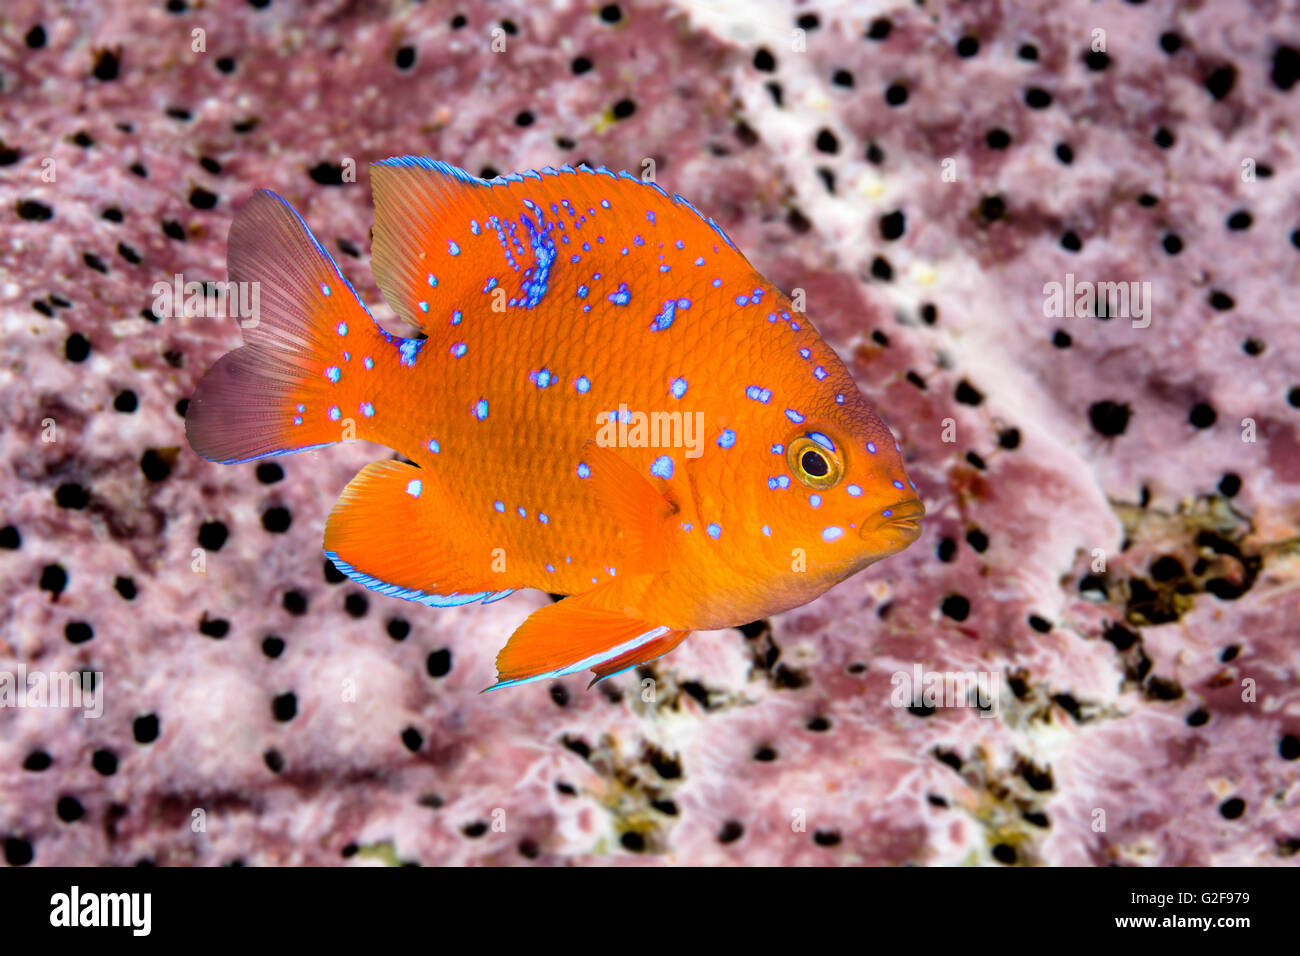 A juvenile garibaldi, the state fish of California, is characterized by its iridescent blue spots, which disappear - Stock Image